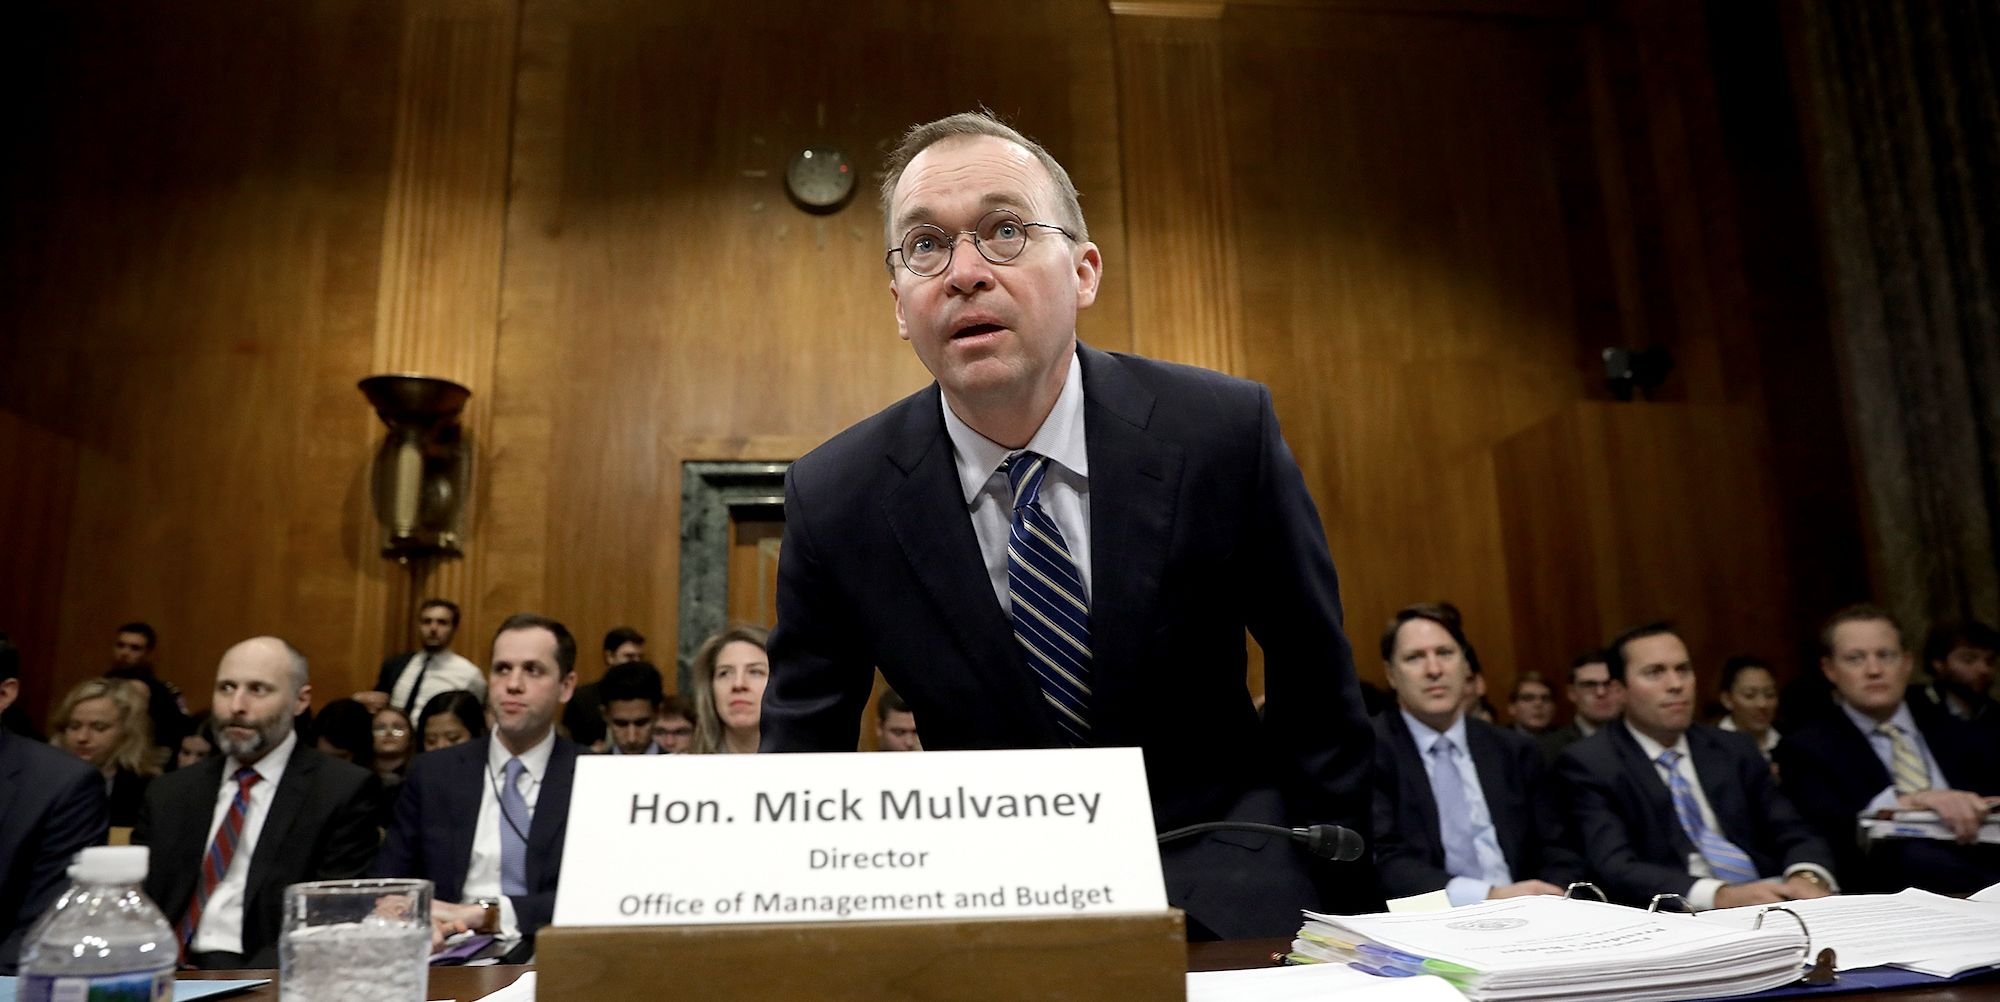 Office Of Management And Budget Director Mick Mulvaney Testifies To Senate Committee On Trump's FY2019 Budget